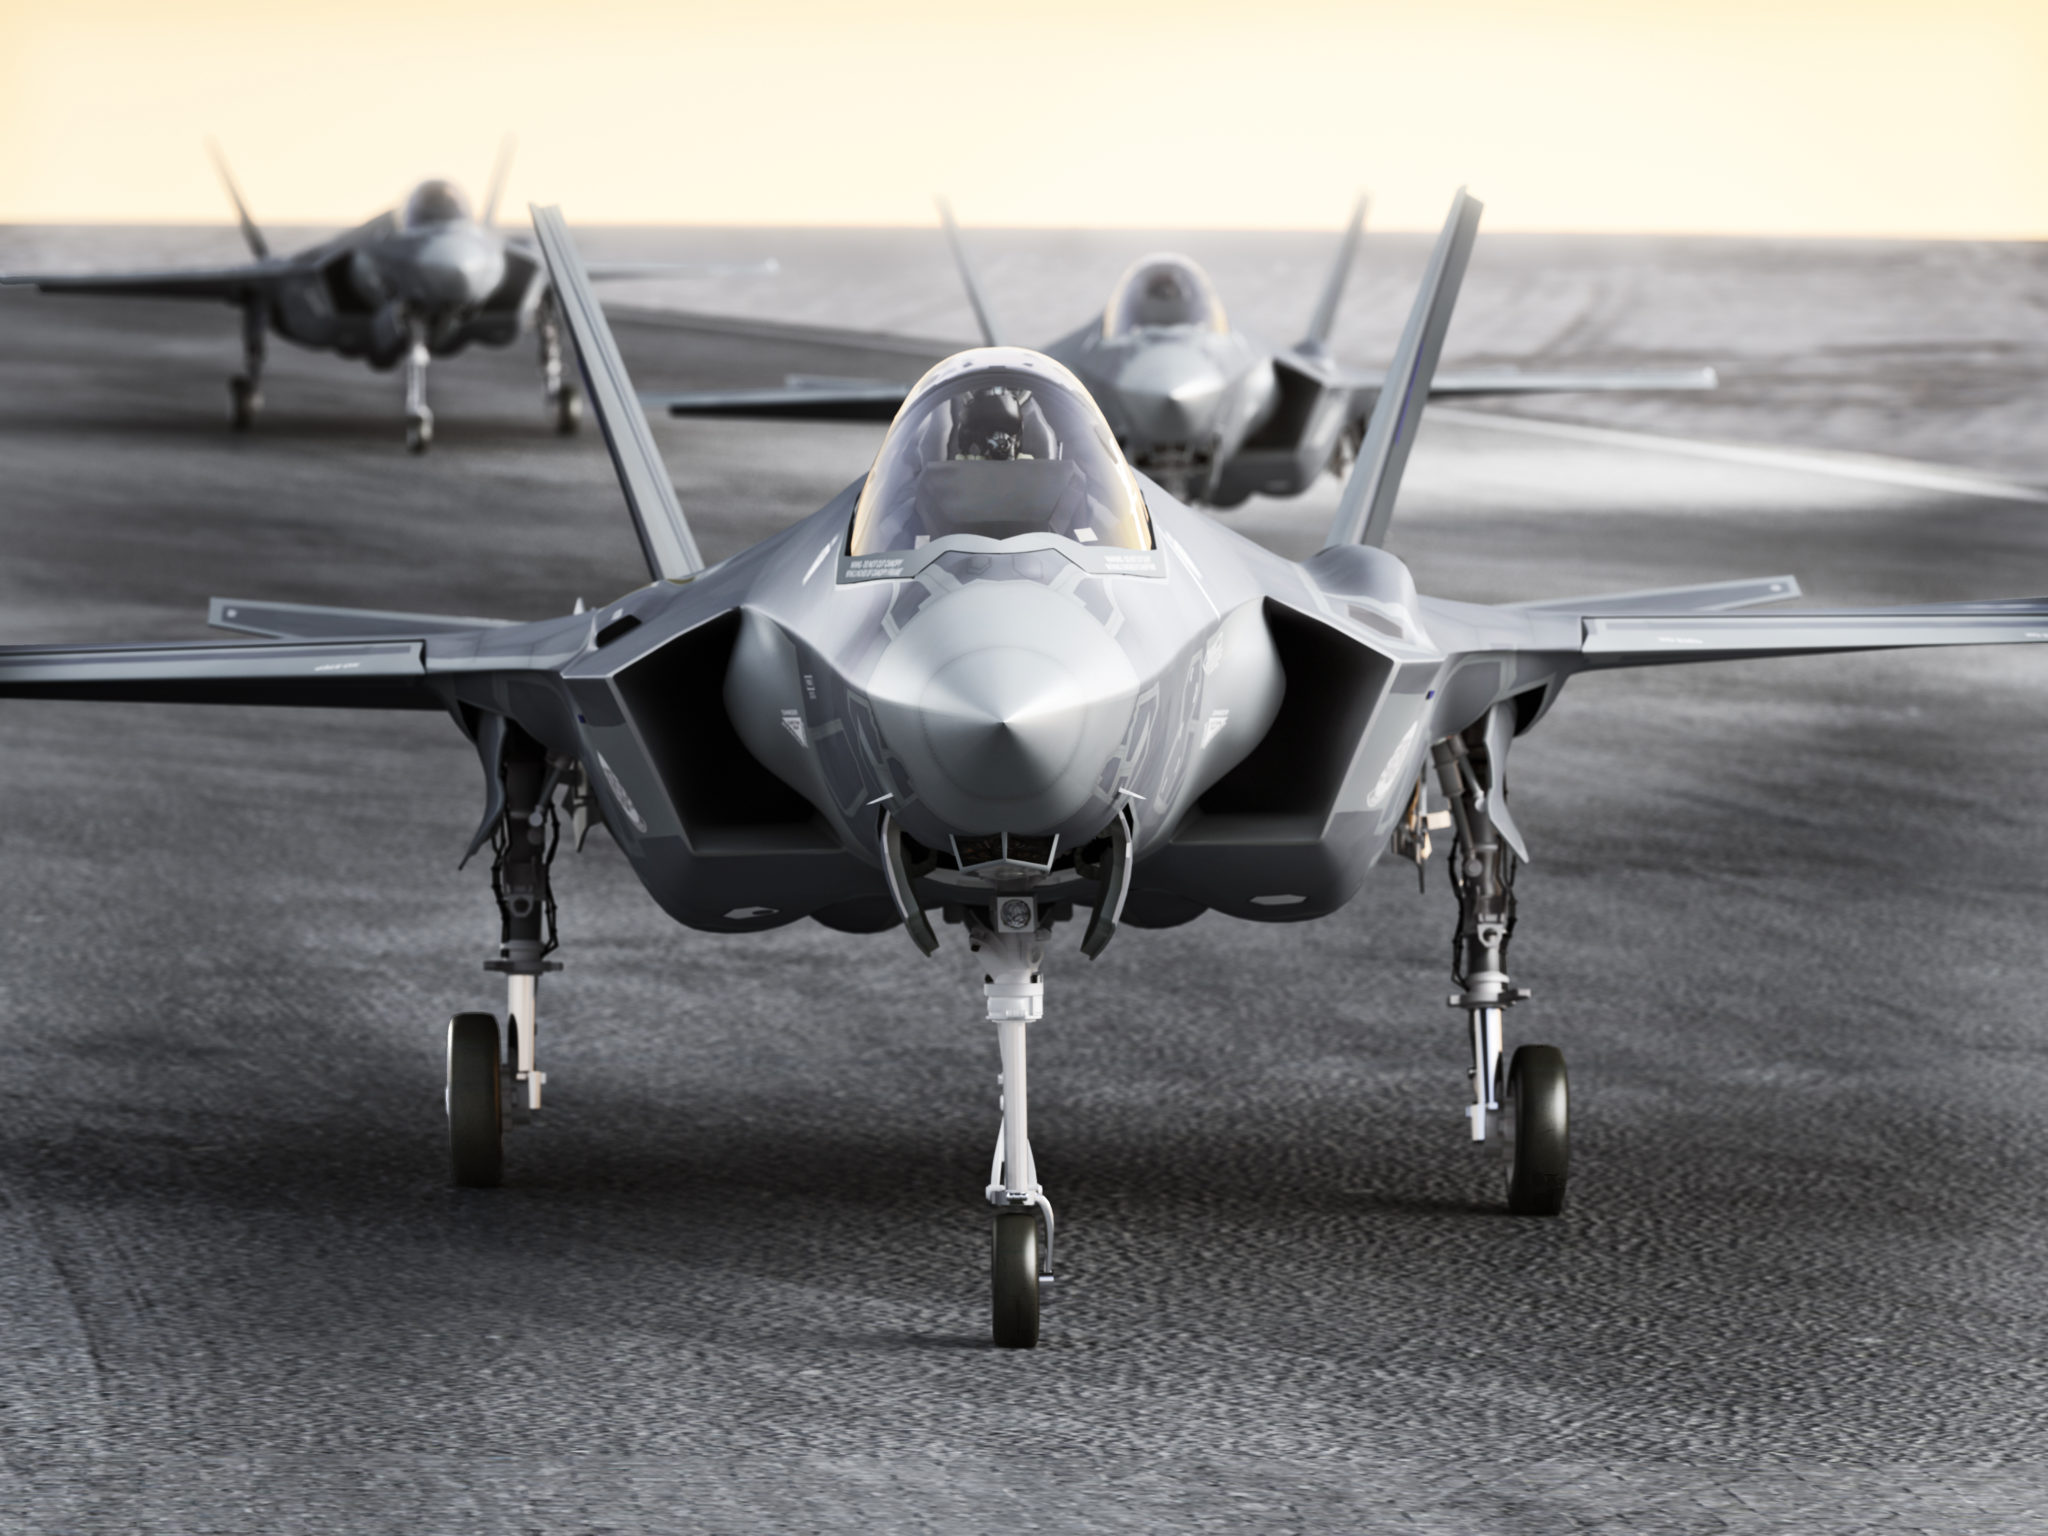 https://www.lone-star.com/wp-content/uploads/2019/01/F-35.jpg